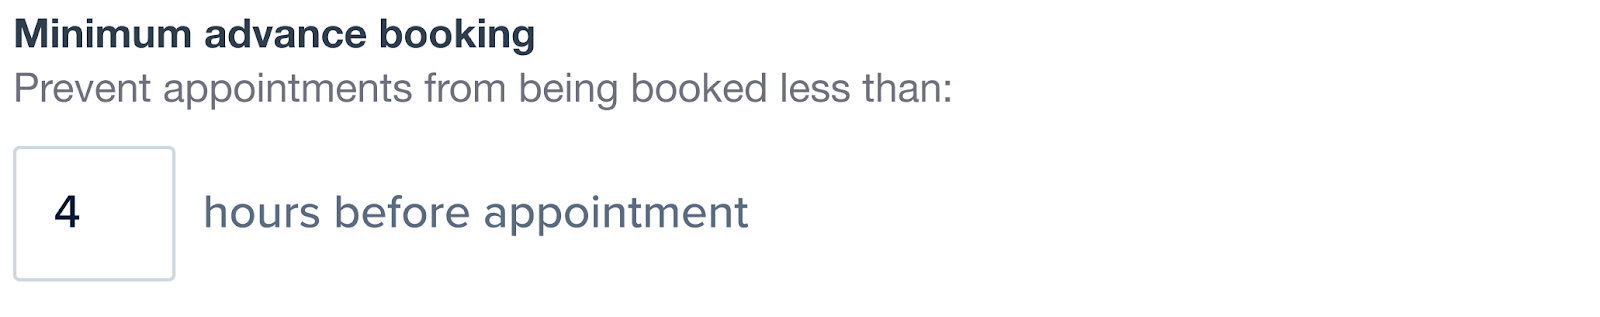 min_advanced_booking.png